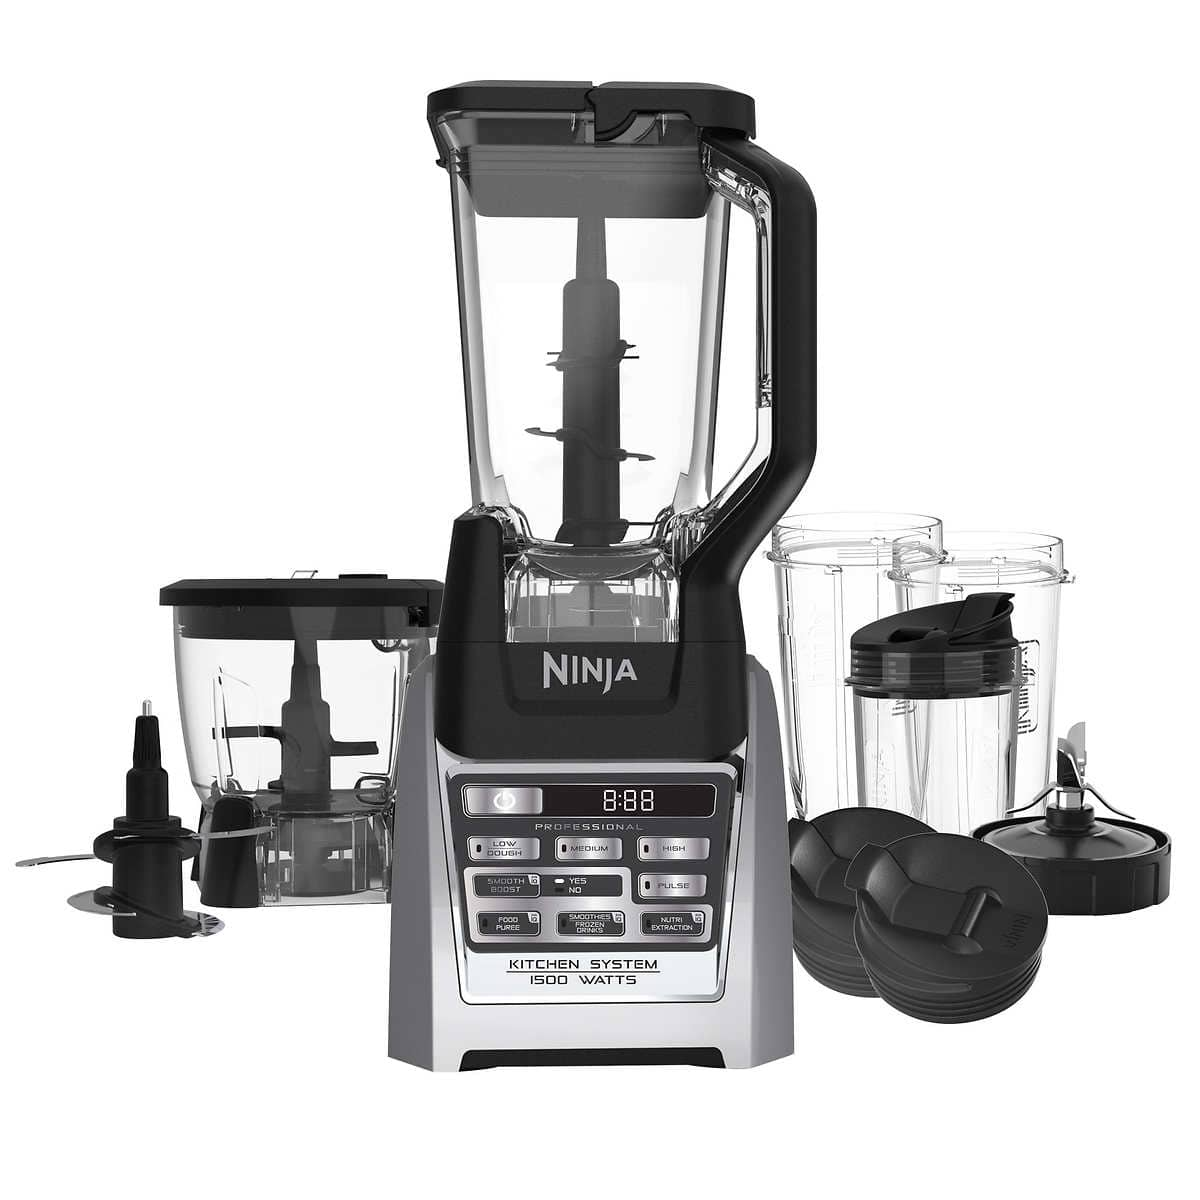 ninja kitchen system with auto iq total boost 12999 - Ninja Kitchen System